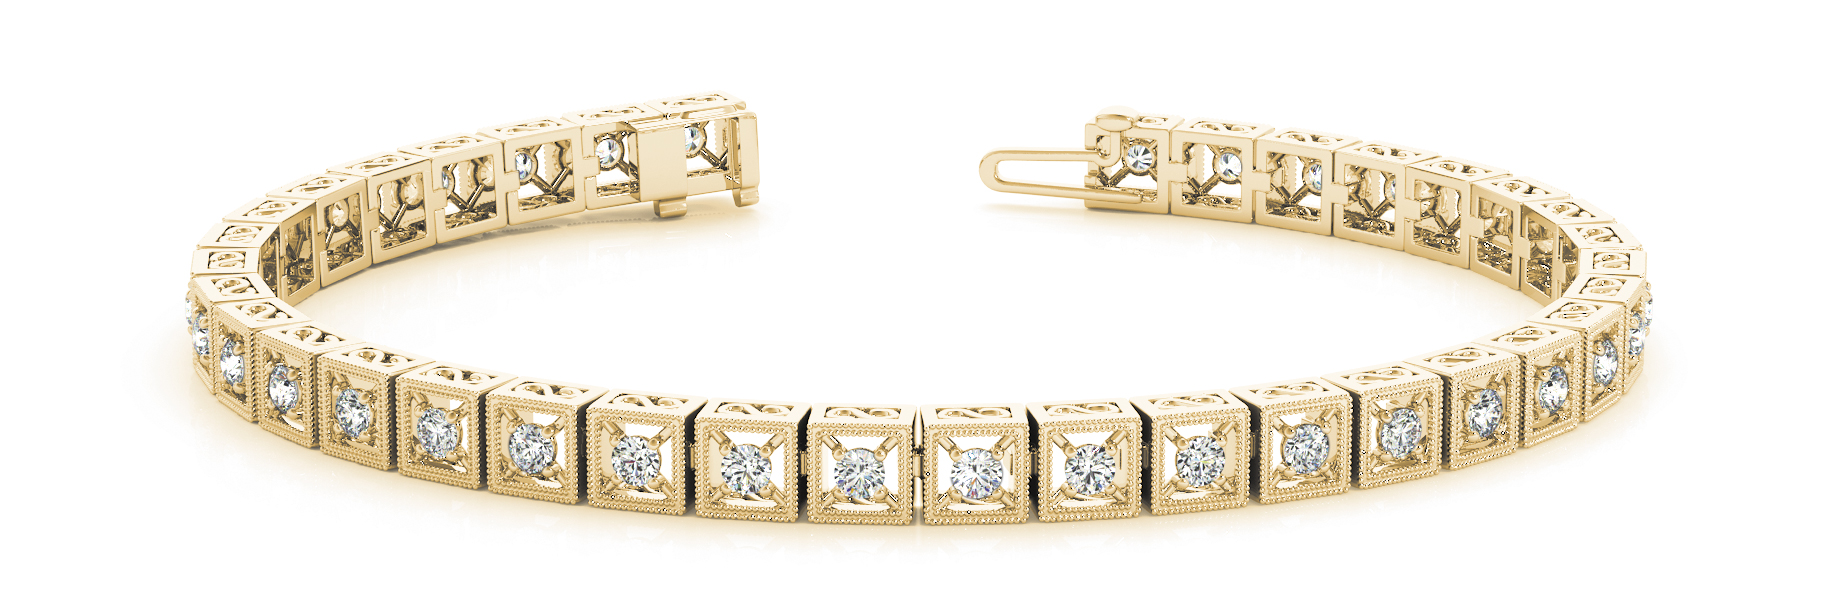 1.08 Carat Round Diamond Square Filigree Yellow Gold Bracelet